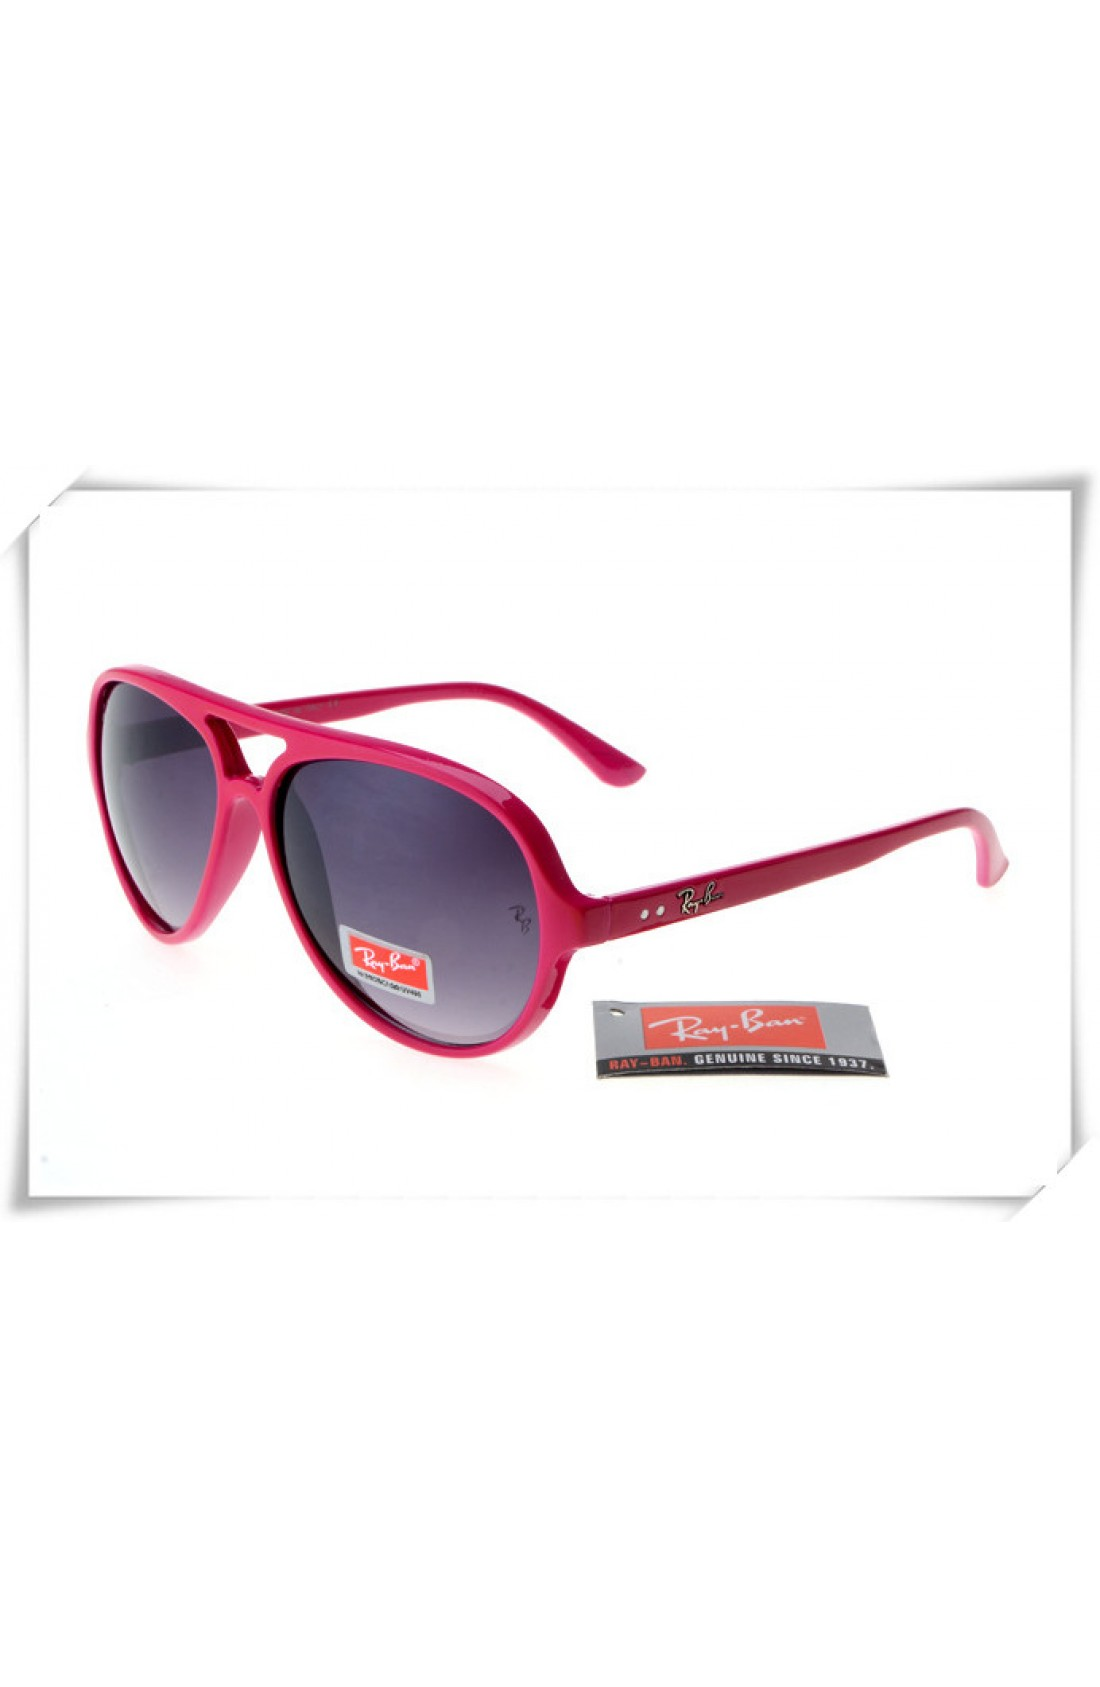 a206b236e5b6b Fake Ray Ban RB4125 Cats 5000 Sunglasses Dark Red Frame Grey ...